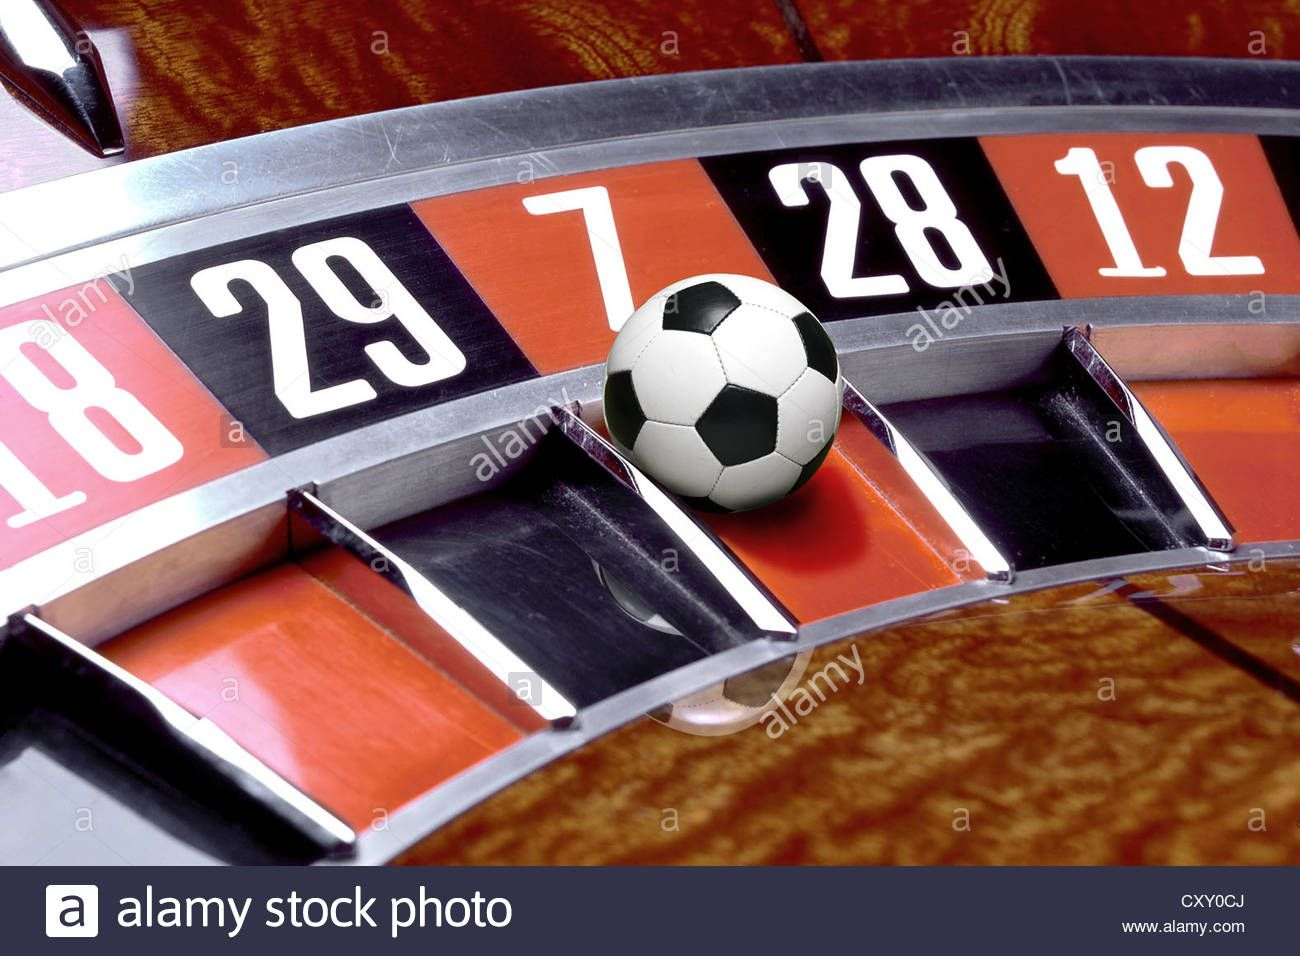 The Fun That Soccer Betting Brings To Online Gambling